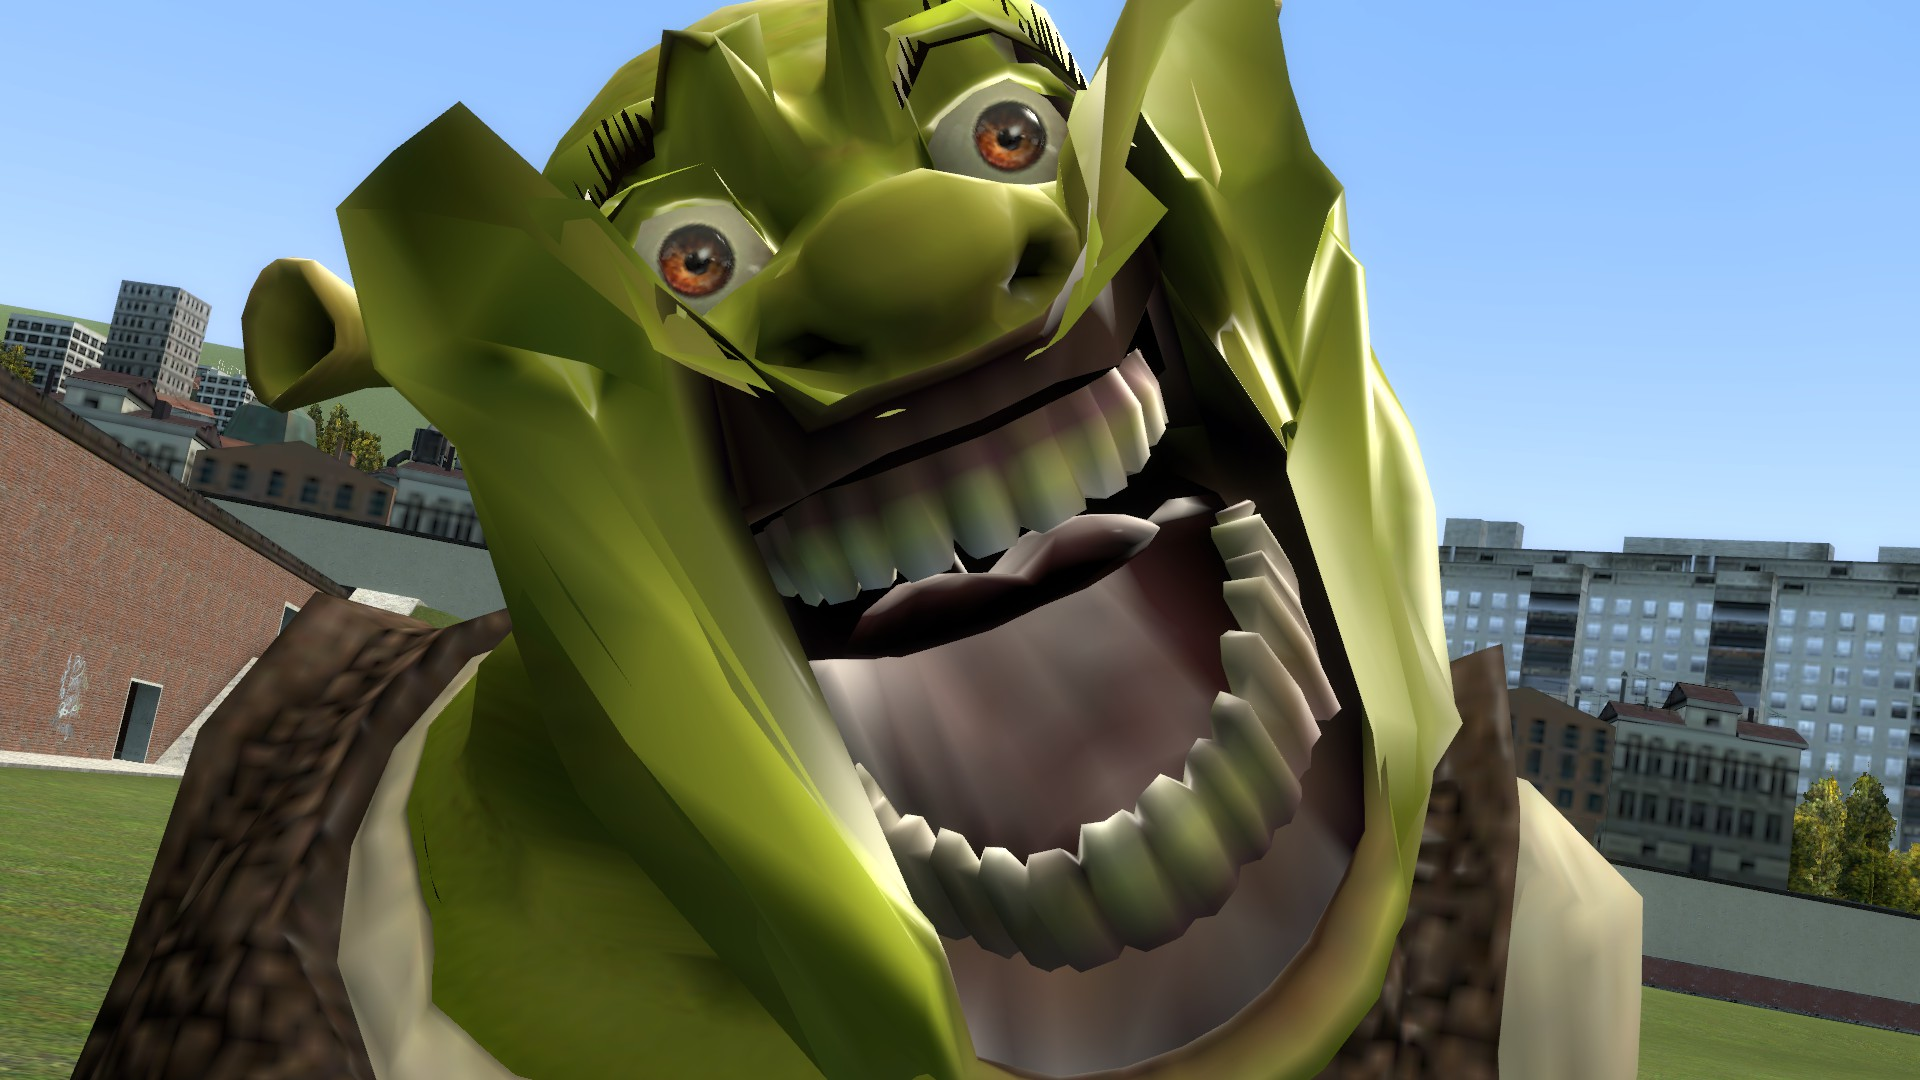 Shrek S O Face Shrek Know Your Meme